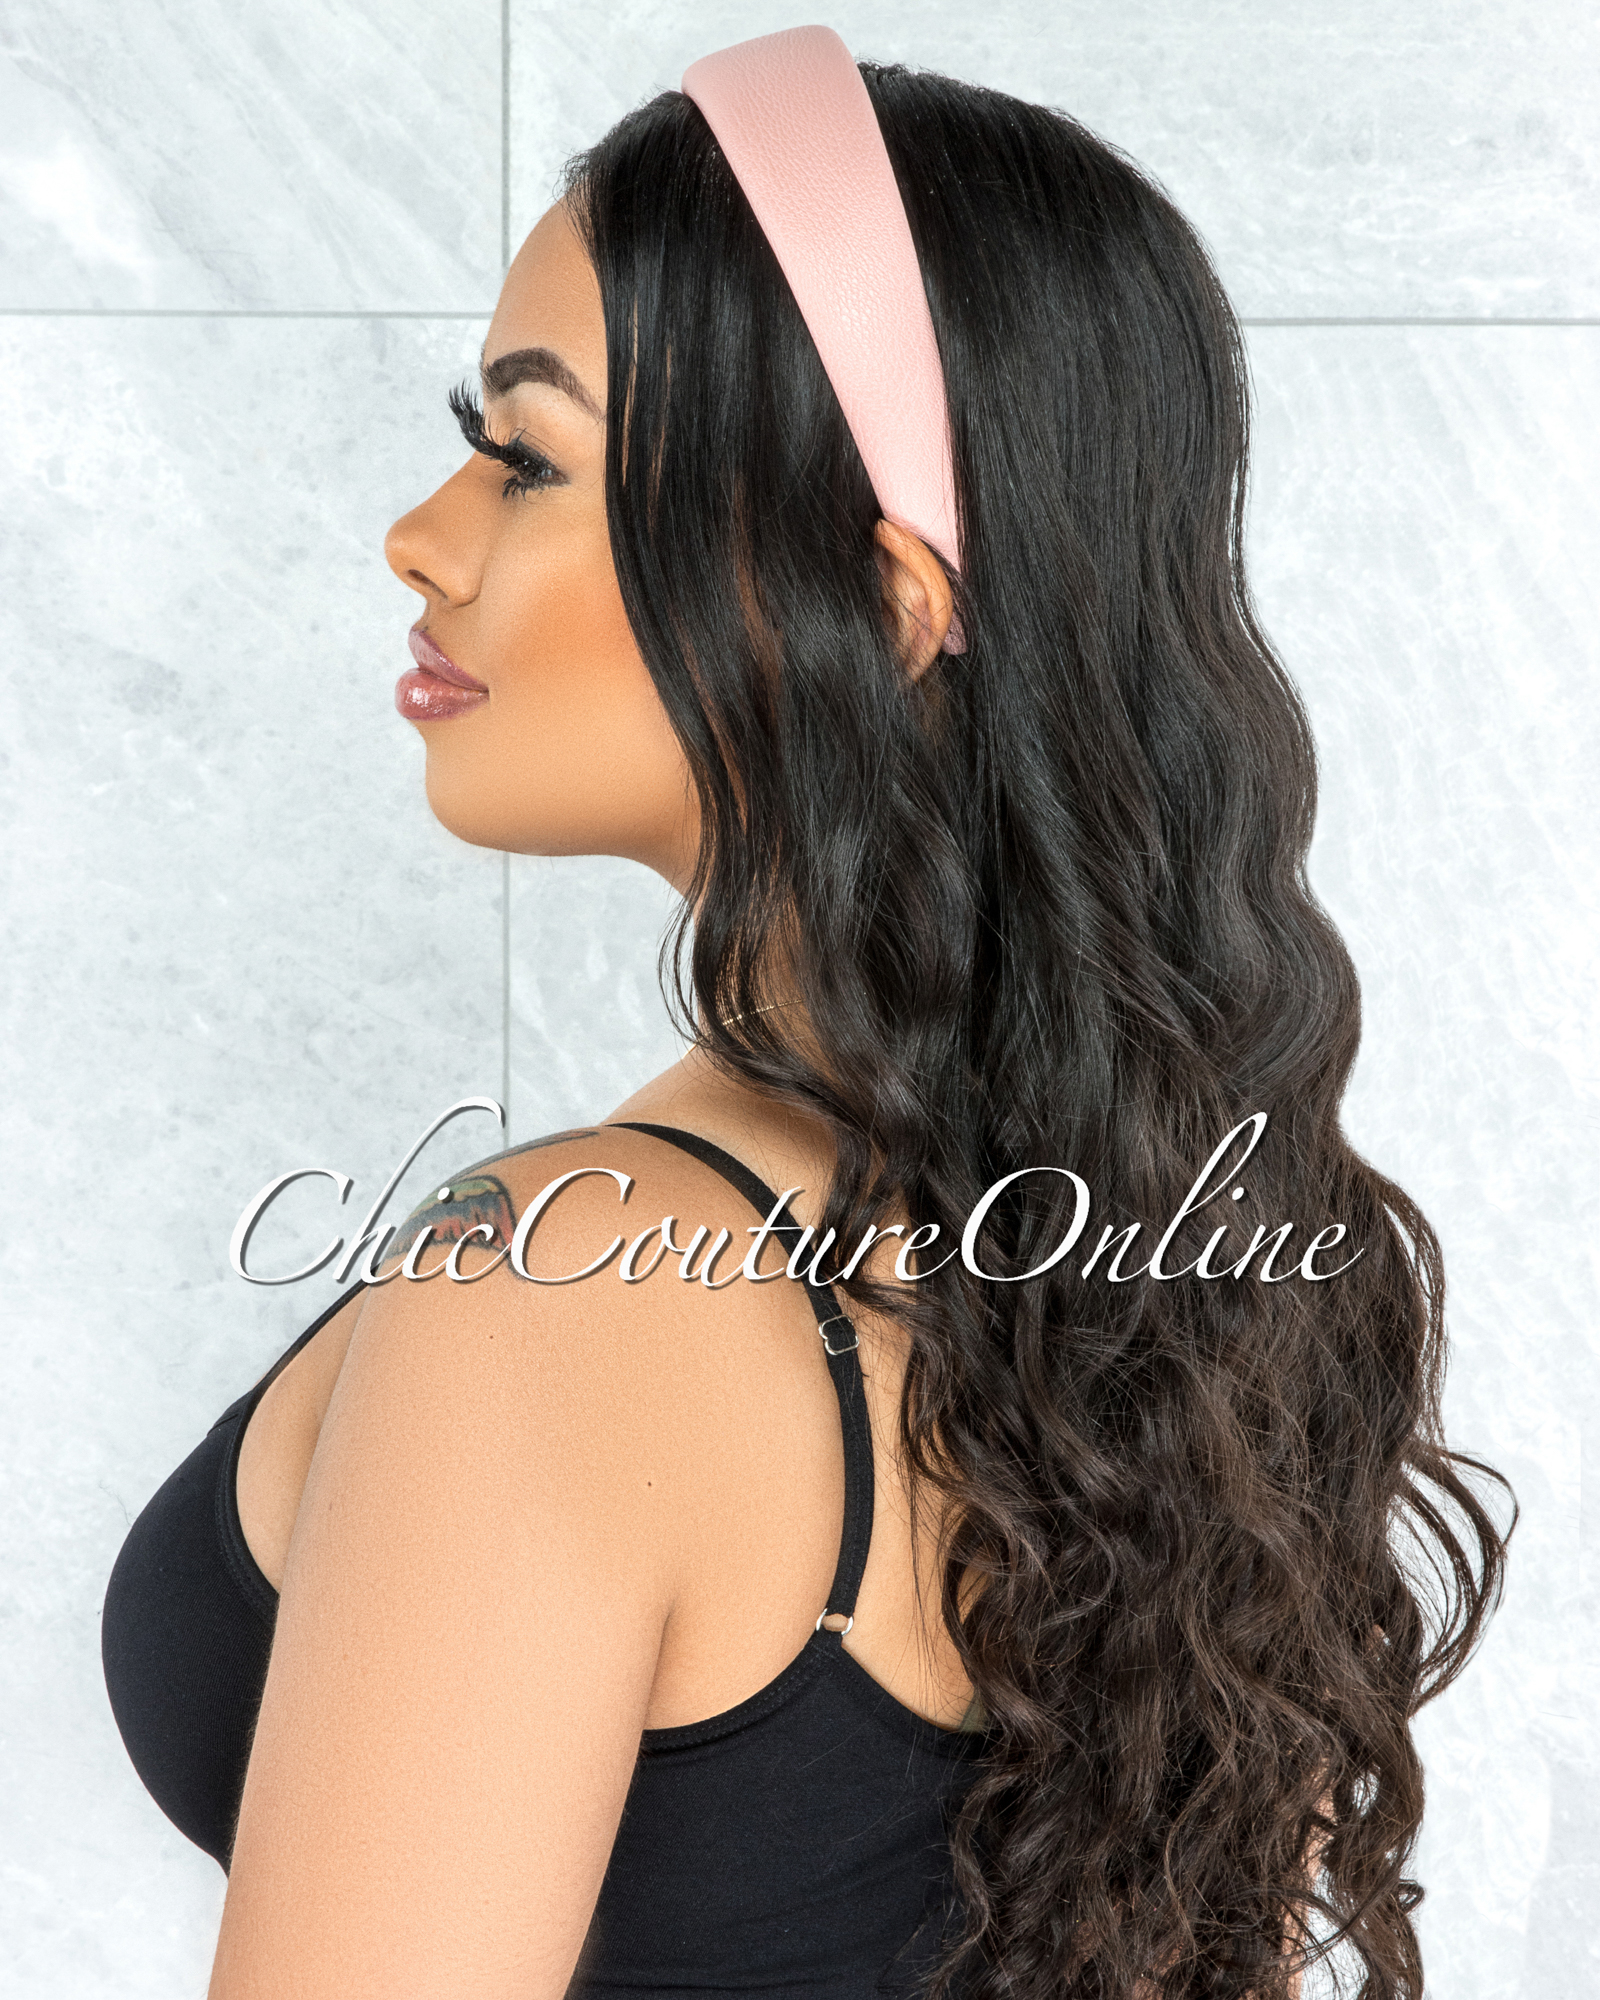 Alexis Pink Faux Leather Simple Headband